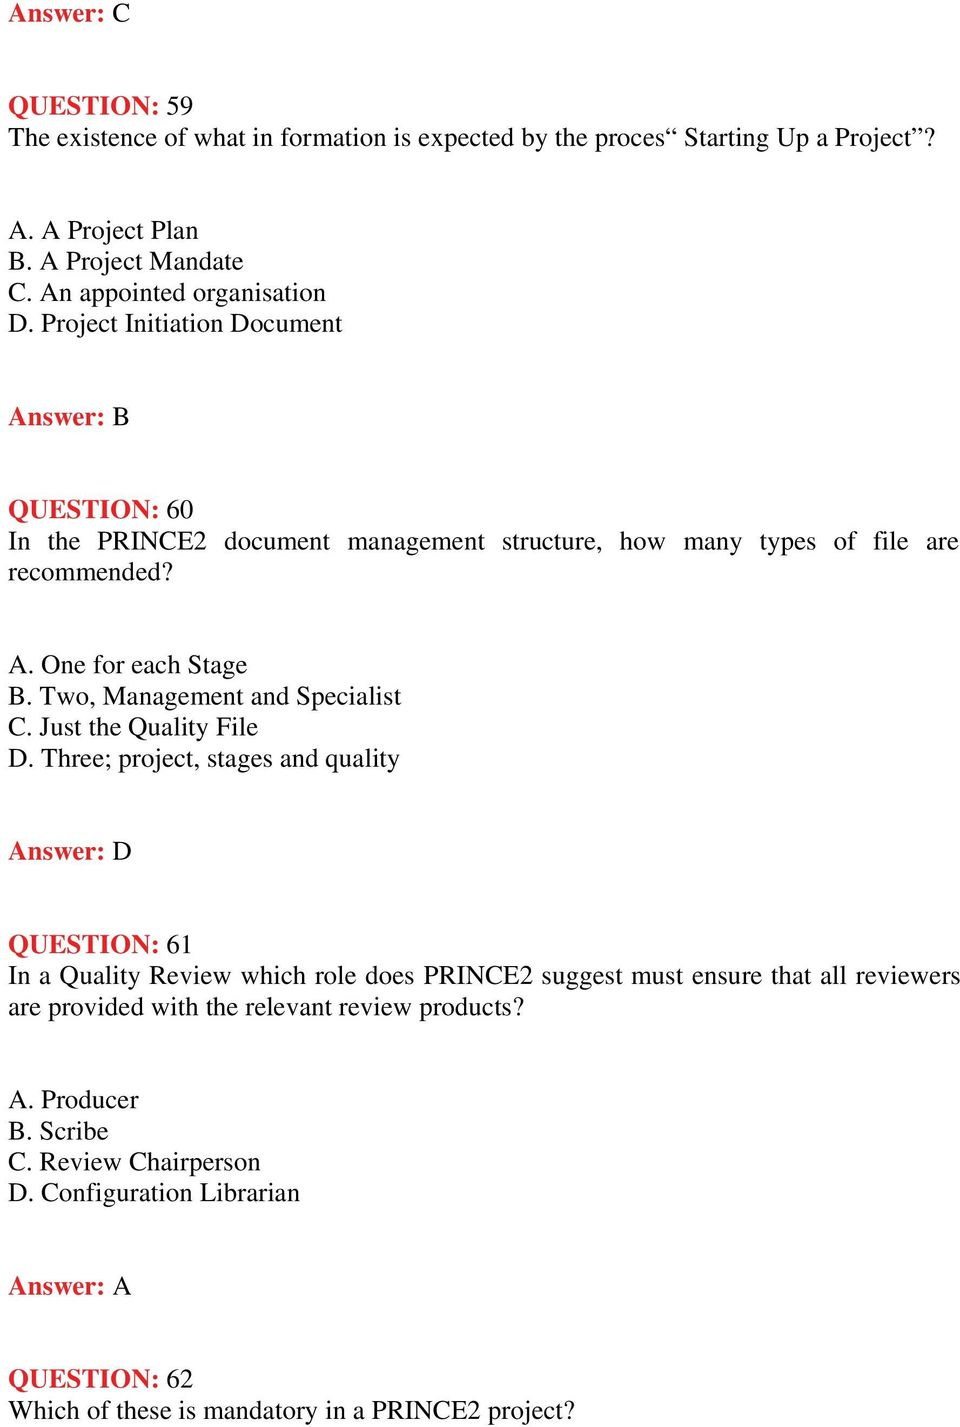 Magnificent prince2 project mandate template images for Prince2 terms of reference template